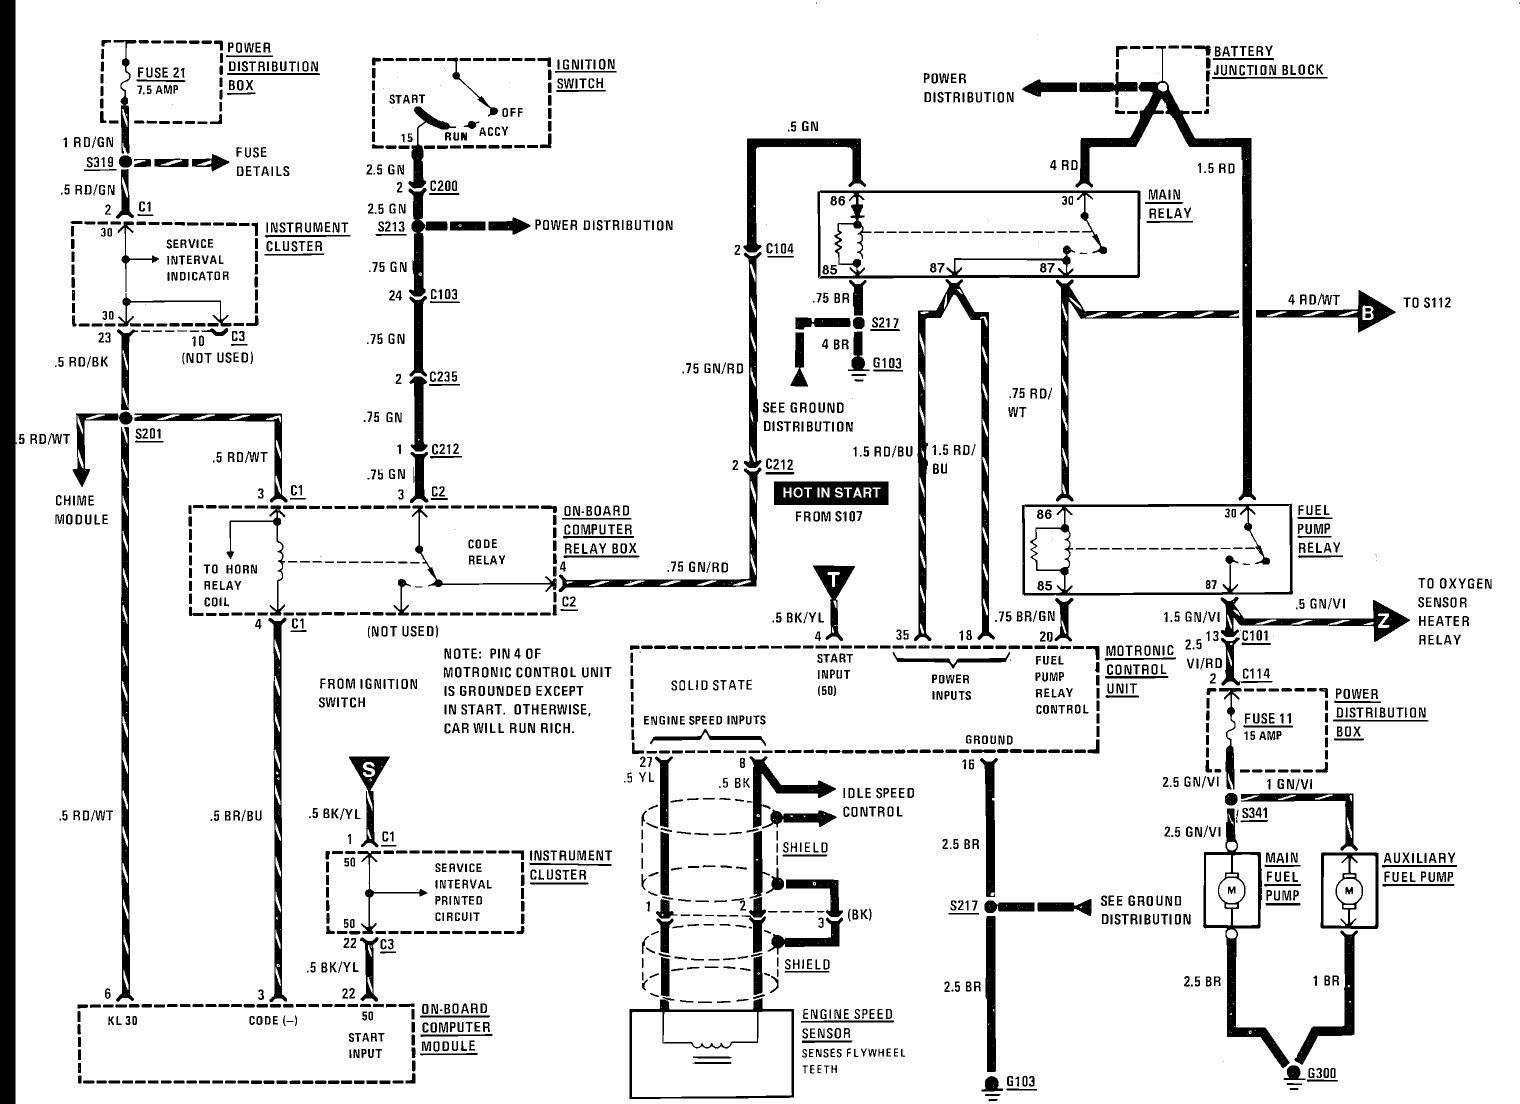 DIAGRAM] 1999 Bmw 328i Convertible Wiring Diagram FULL Version HD Quality Wiring  Diagram - SILVERFUSA110.FUJIYA.ITsilverfusa110.fujiya.it